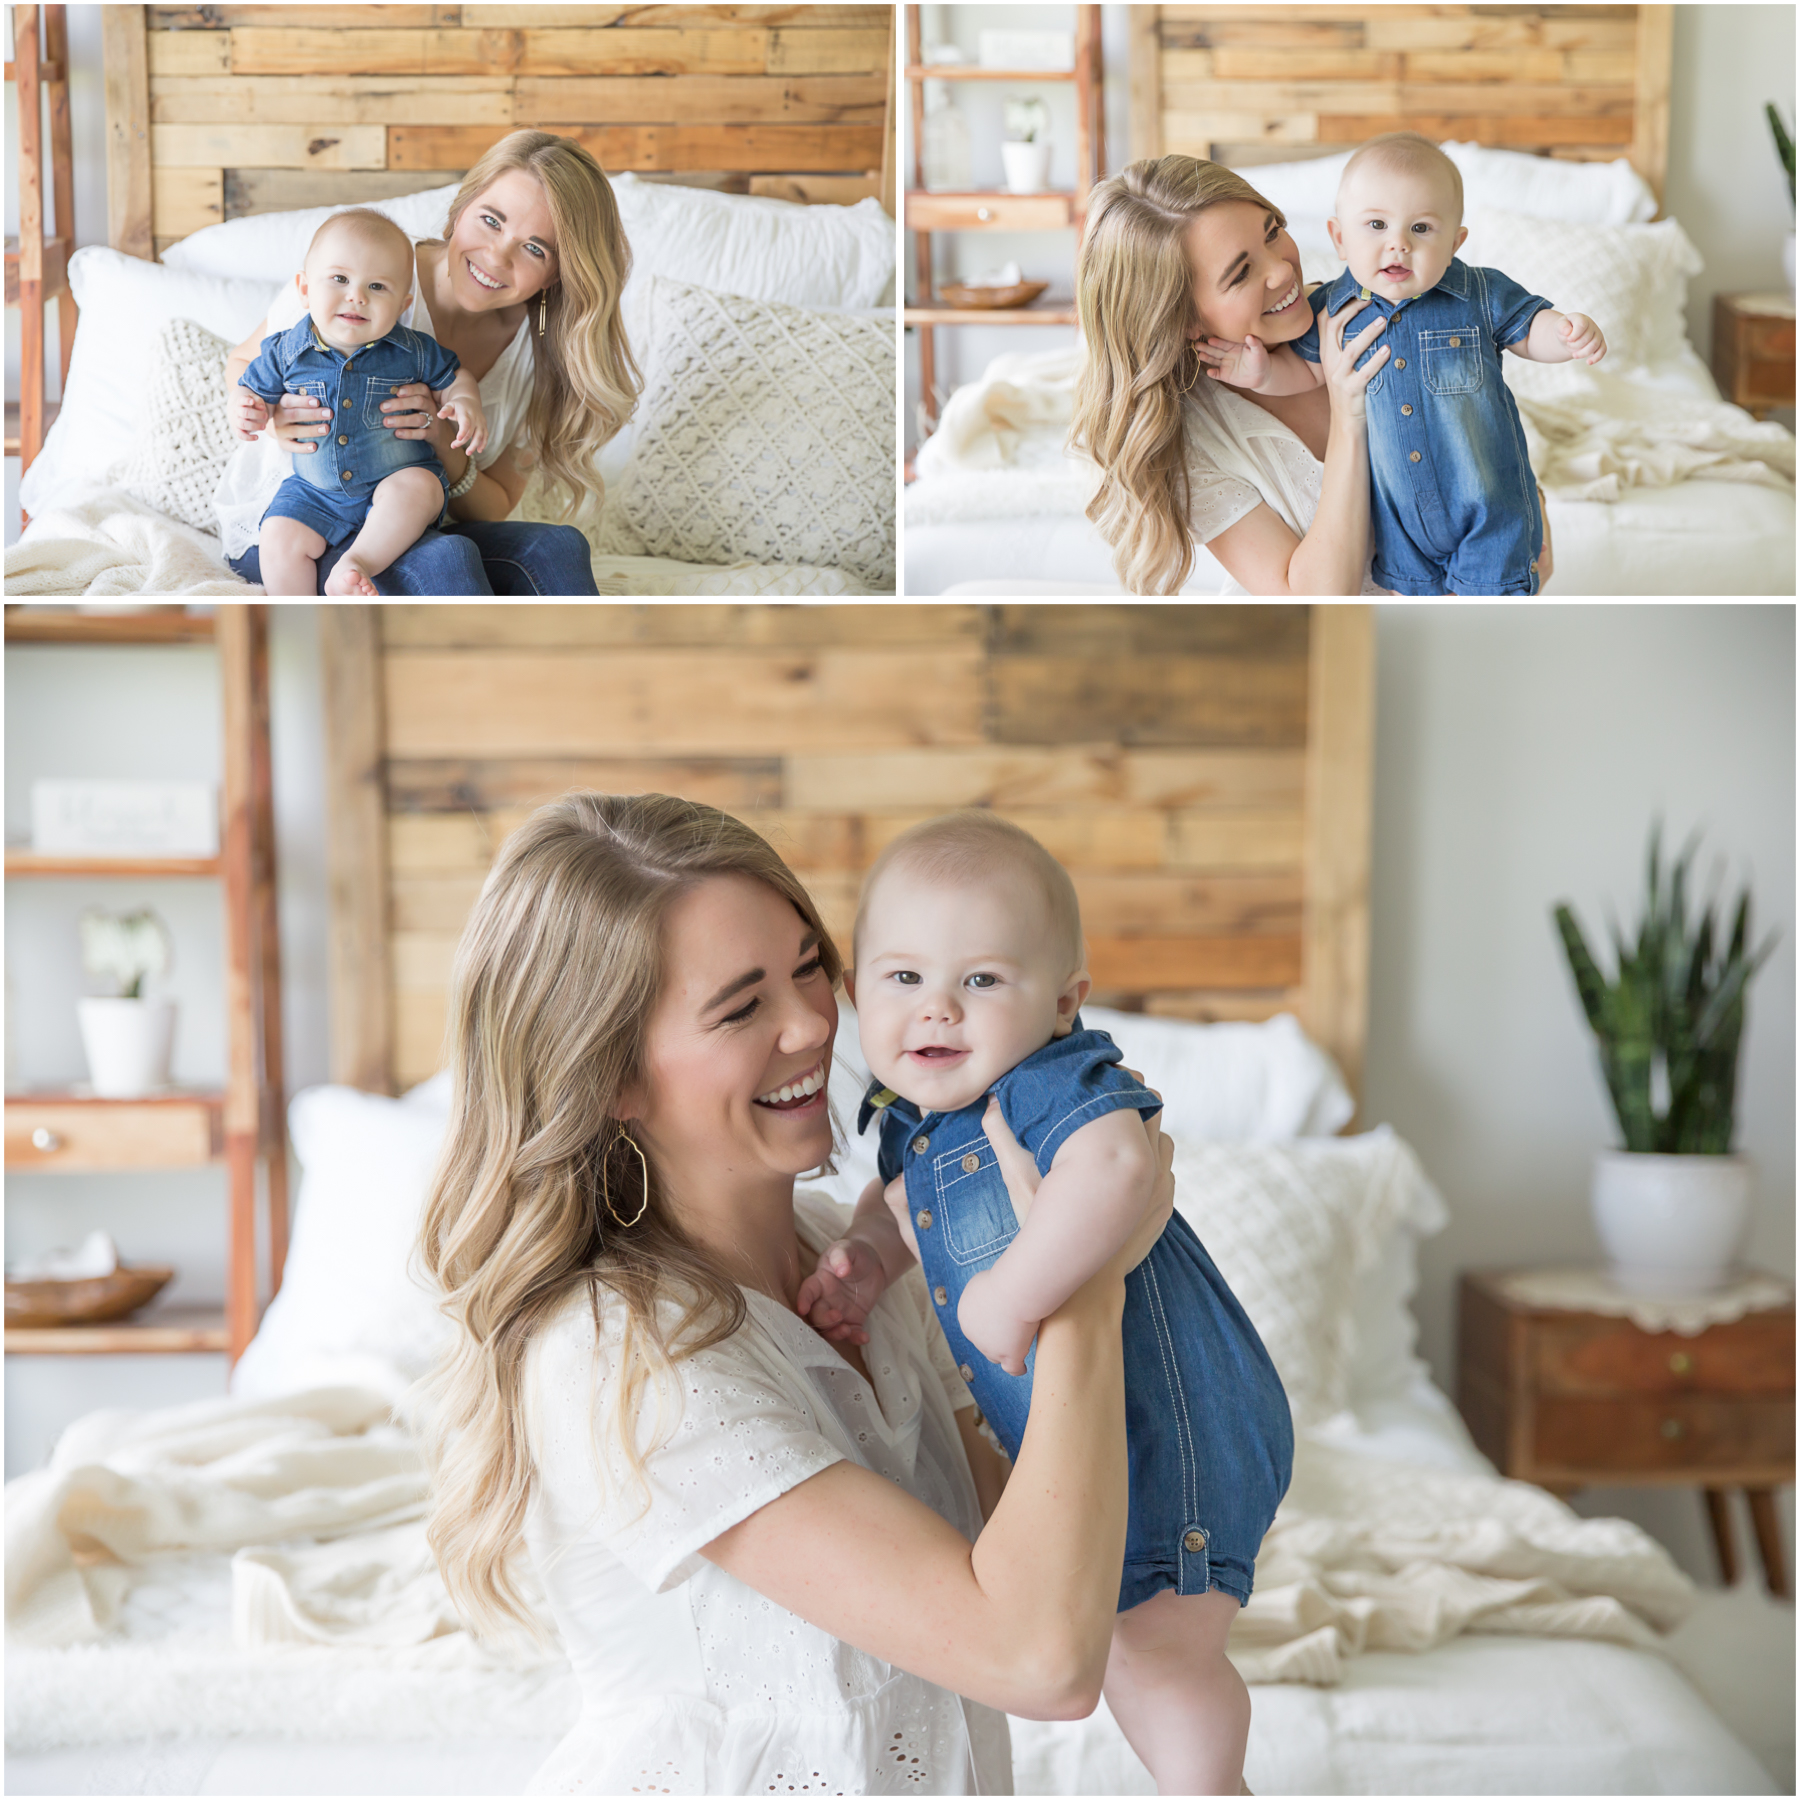 Chelsey & Barret Mommy & Me Session Collage - Cara Peterson Photography 2019  -1.jpg